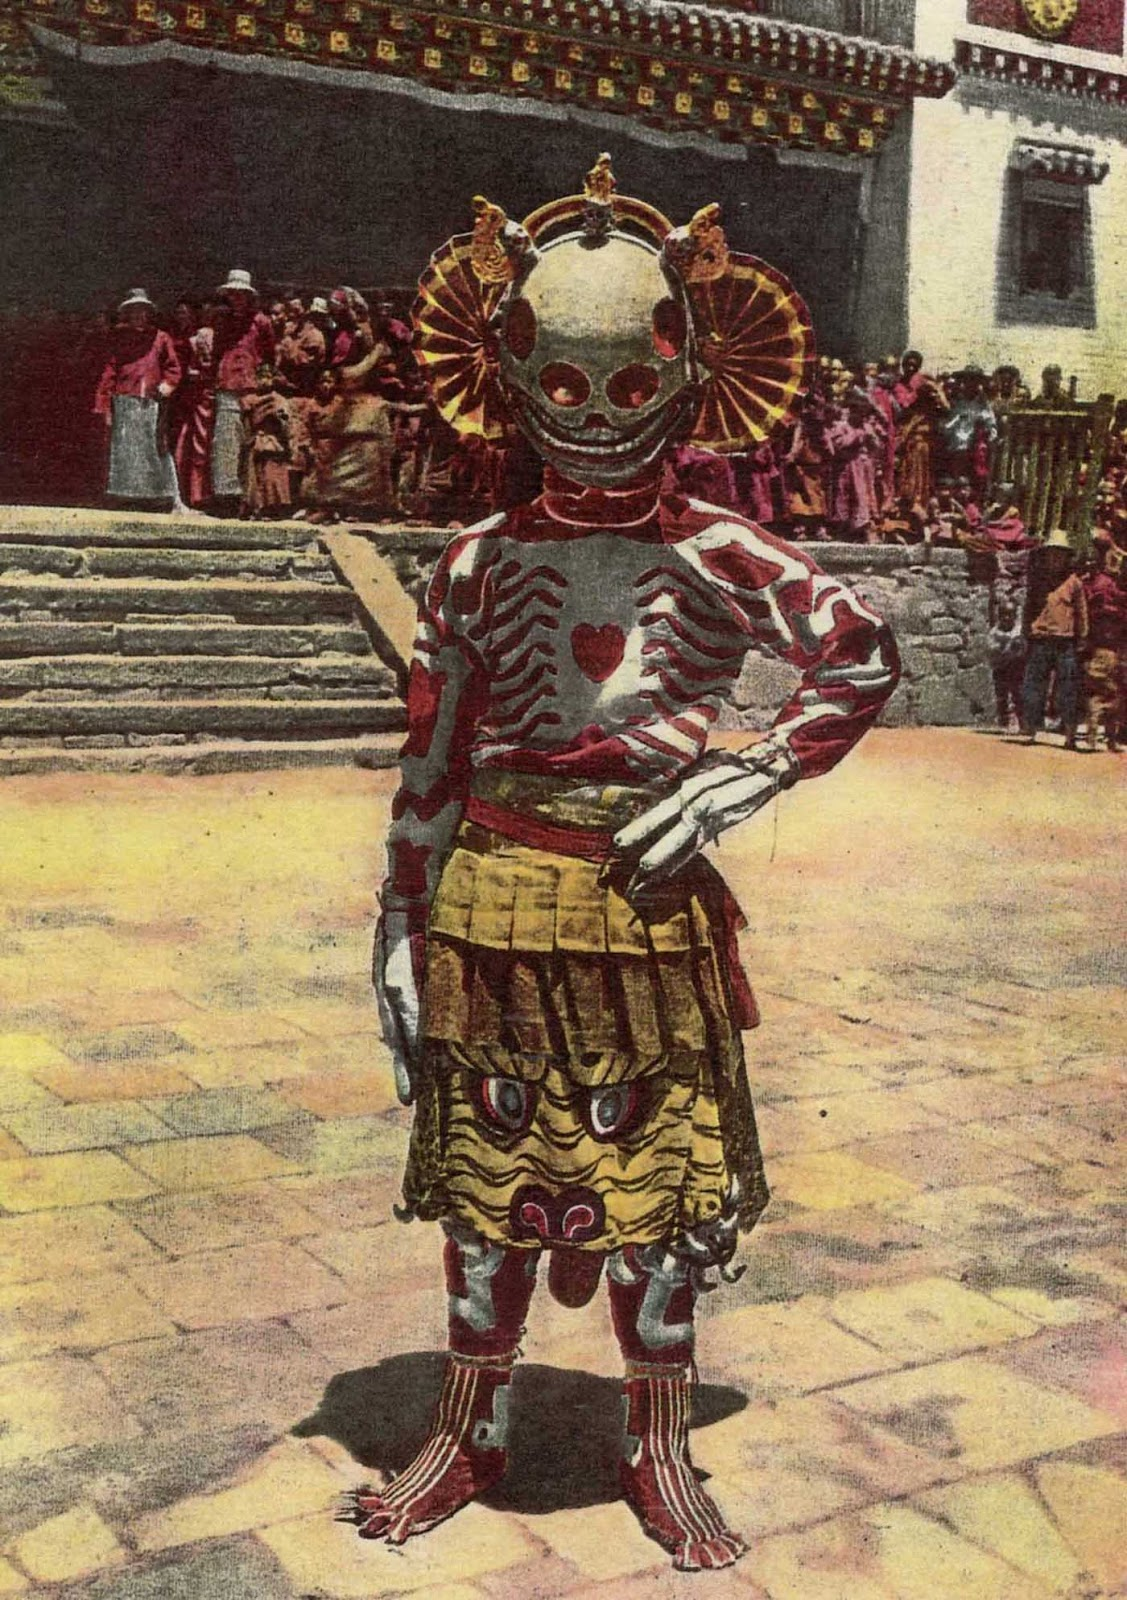 Tibetan Skeleton Dance, 1925.